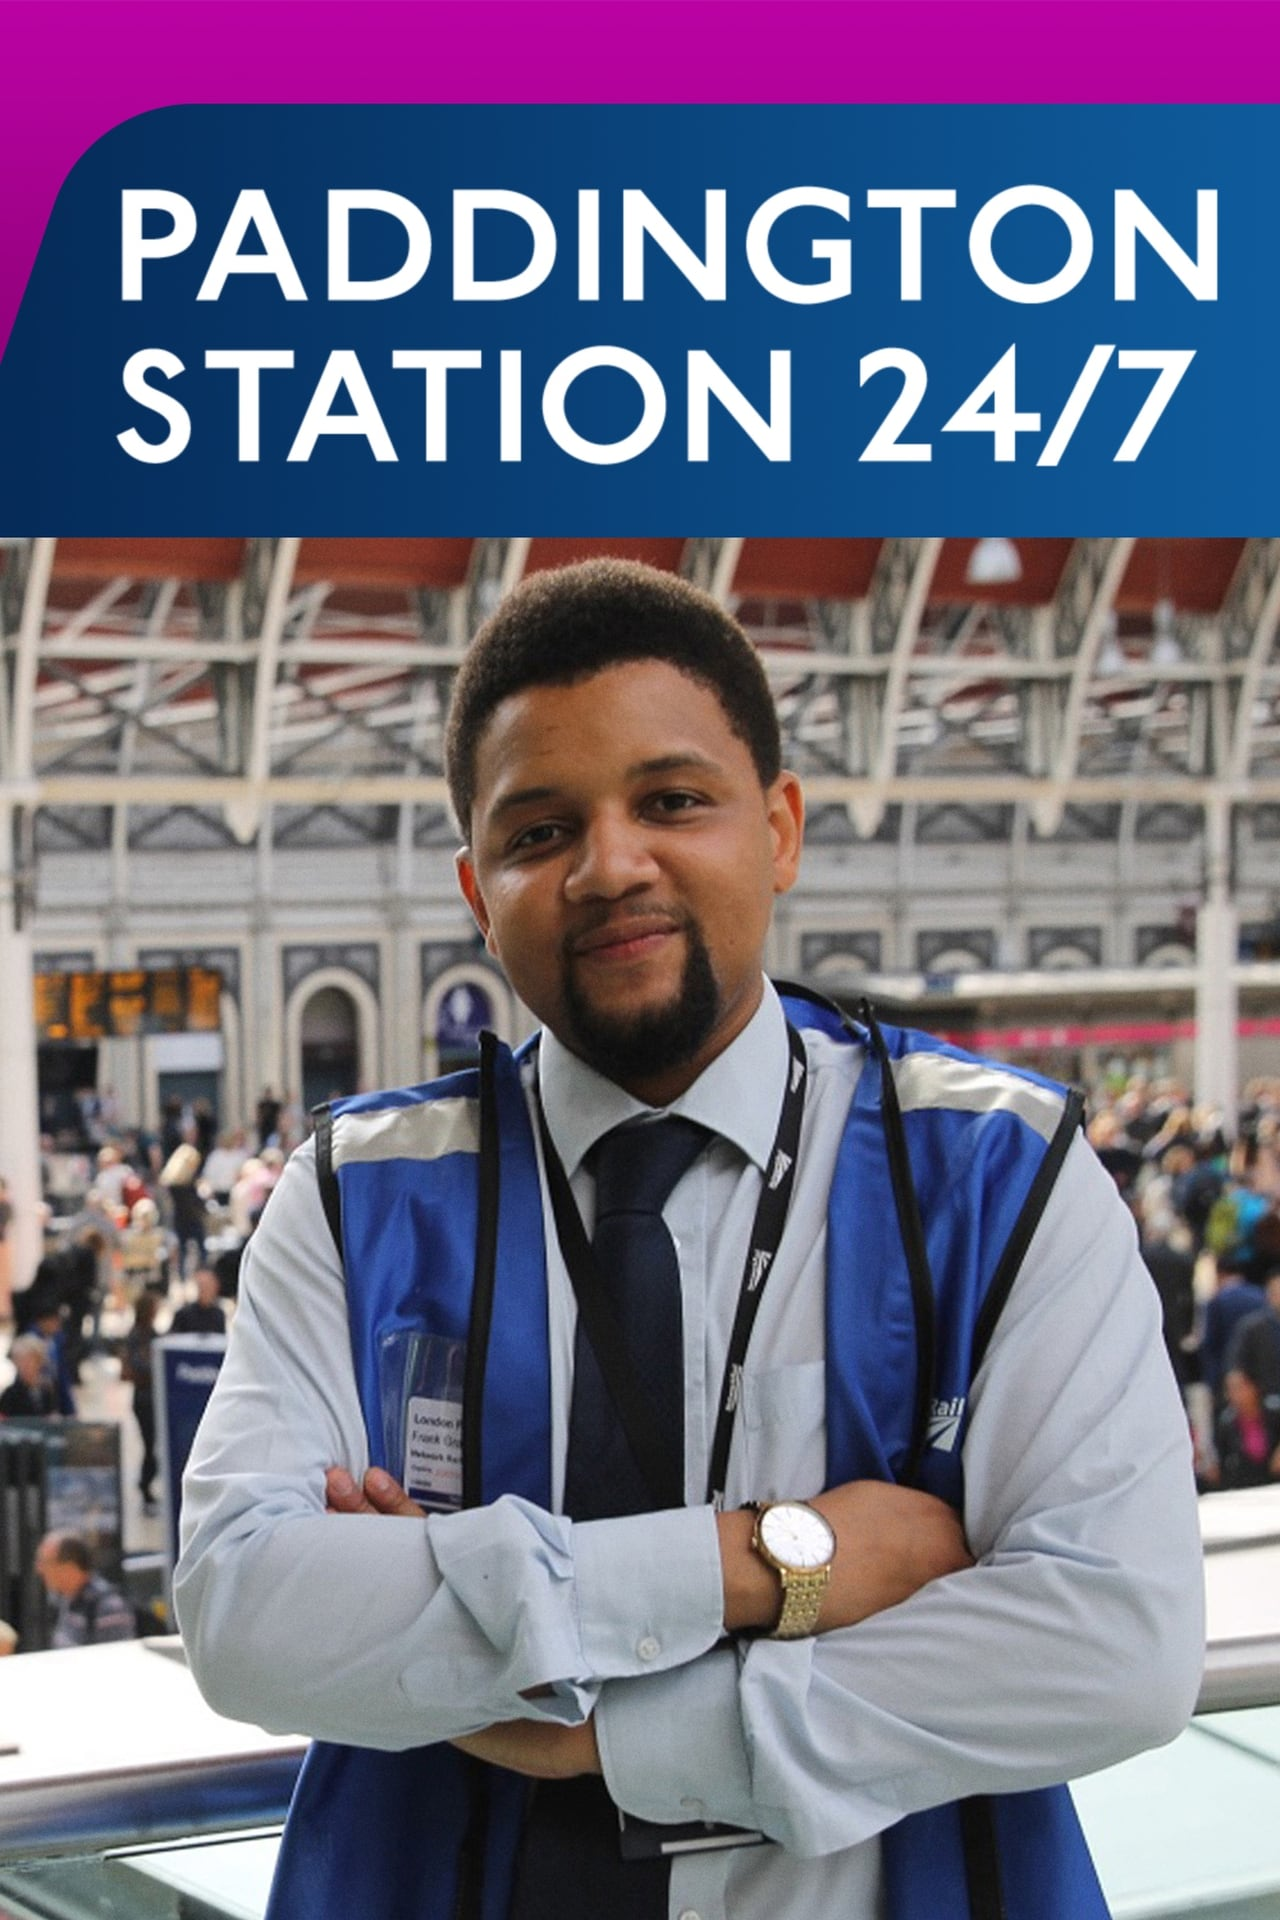 Putlocker Paddington Station 24/7 Season 2 (2018)